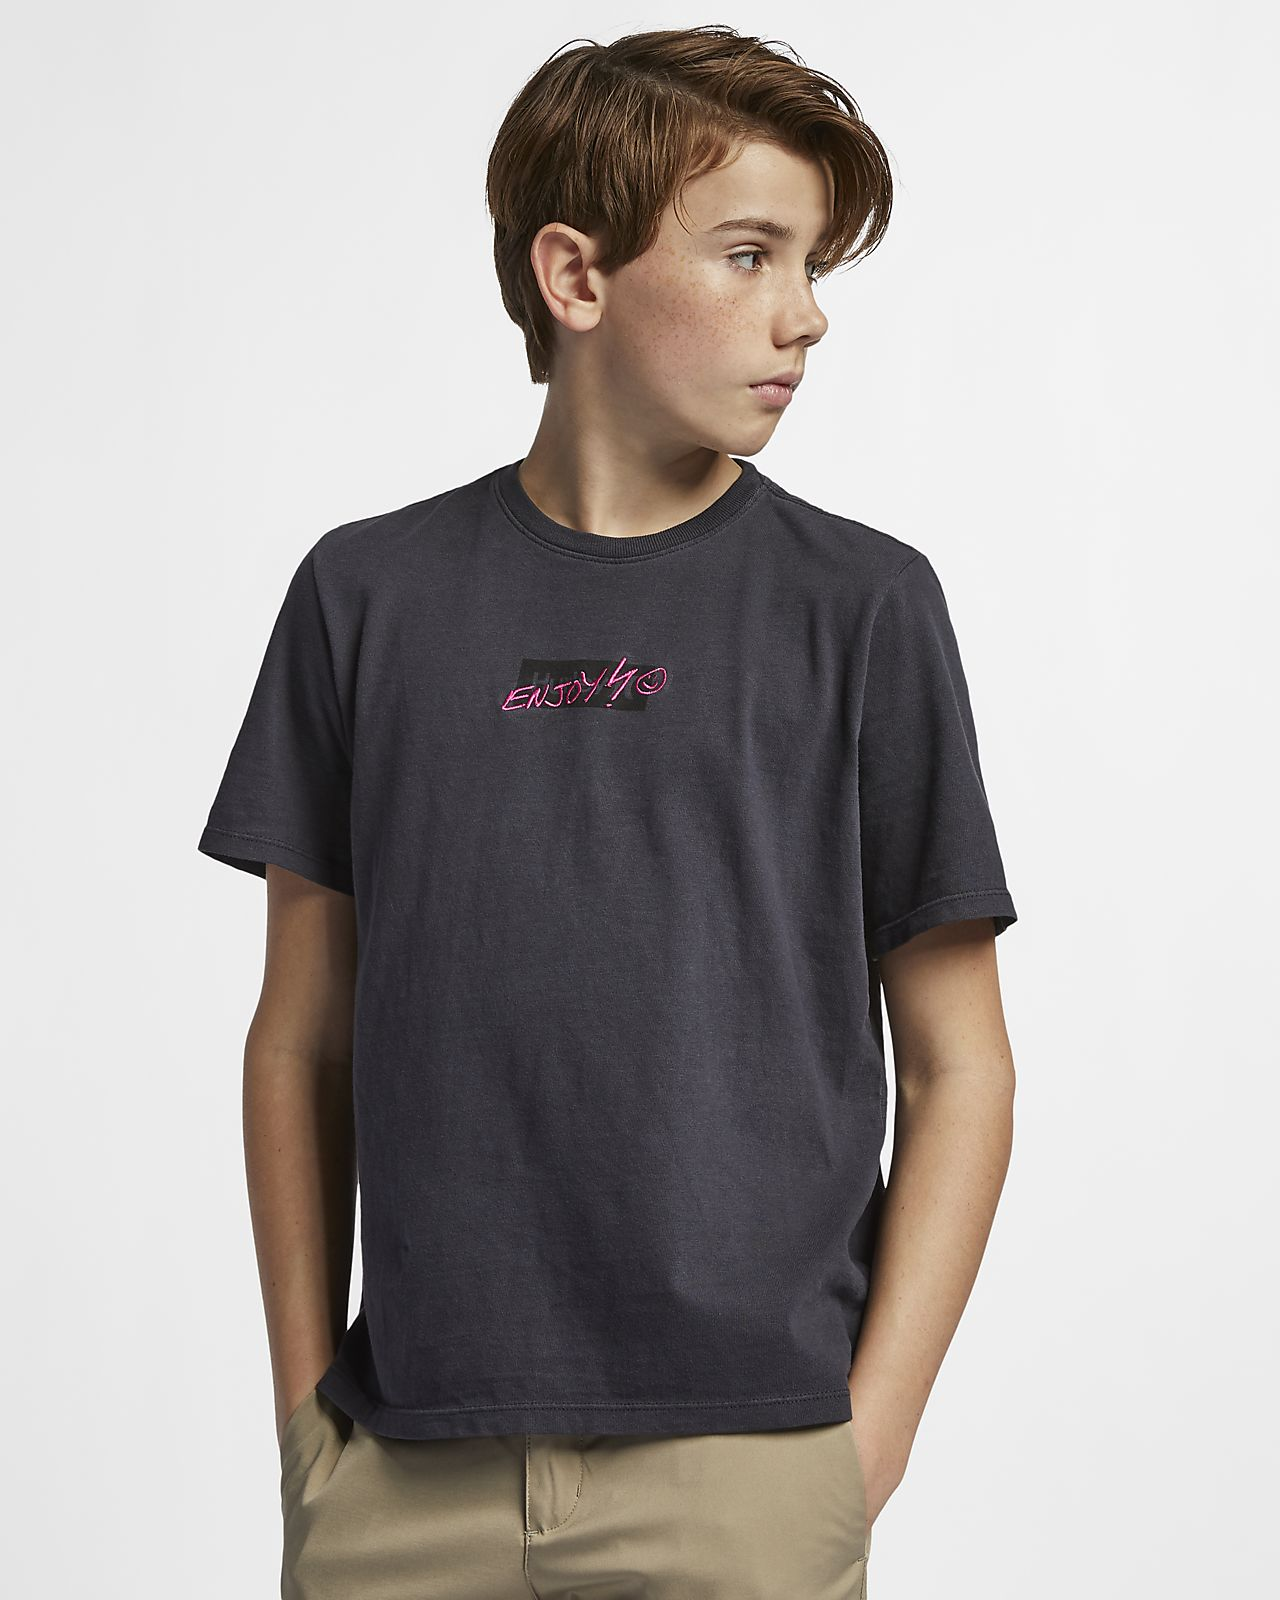 cd2c1407d02 Hurley Heavy Enjoy Boys  T-Shirt. Nike.com